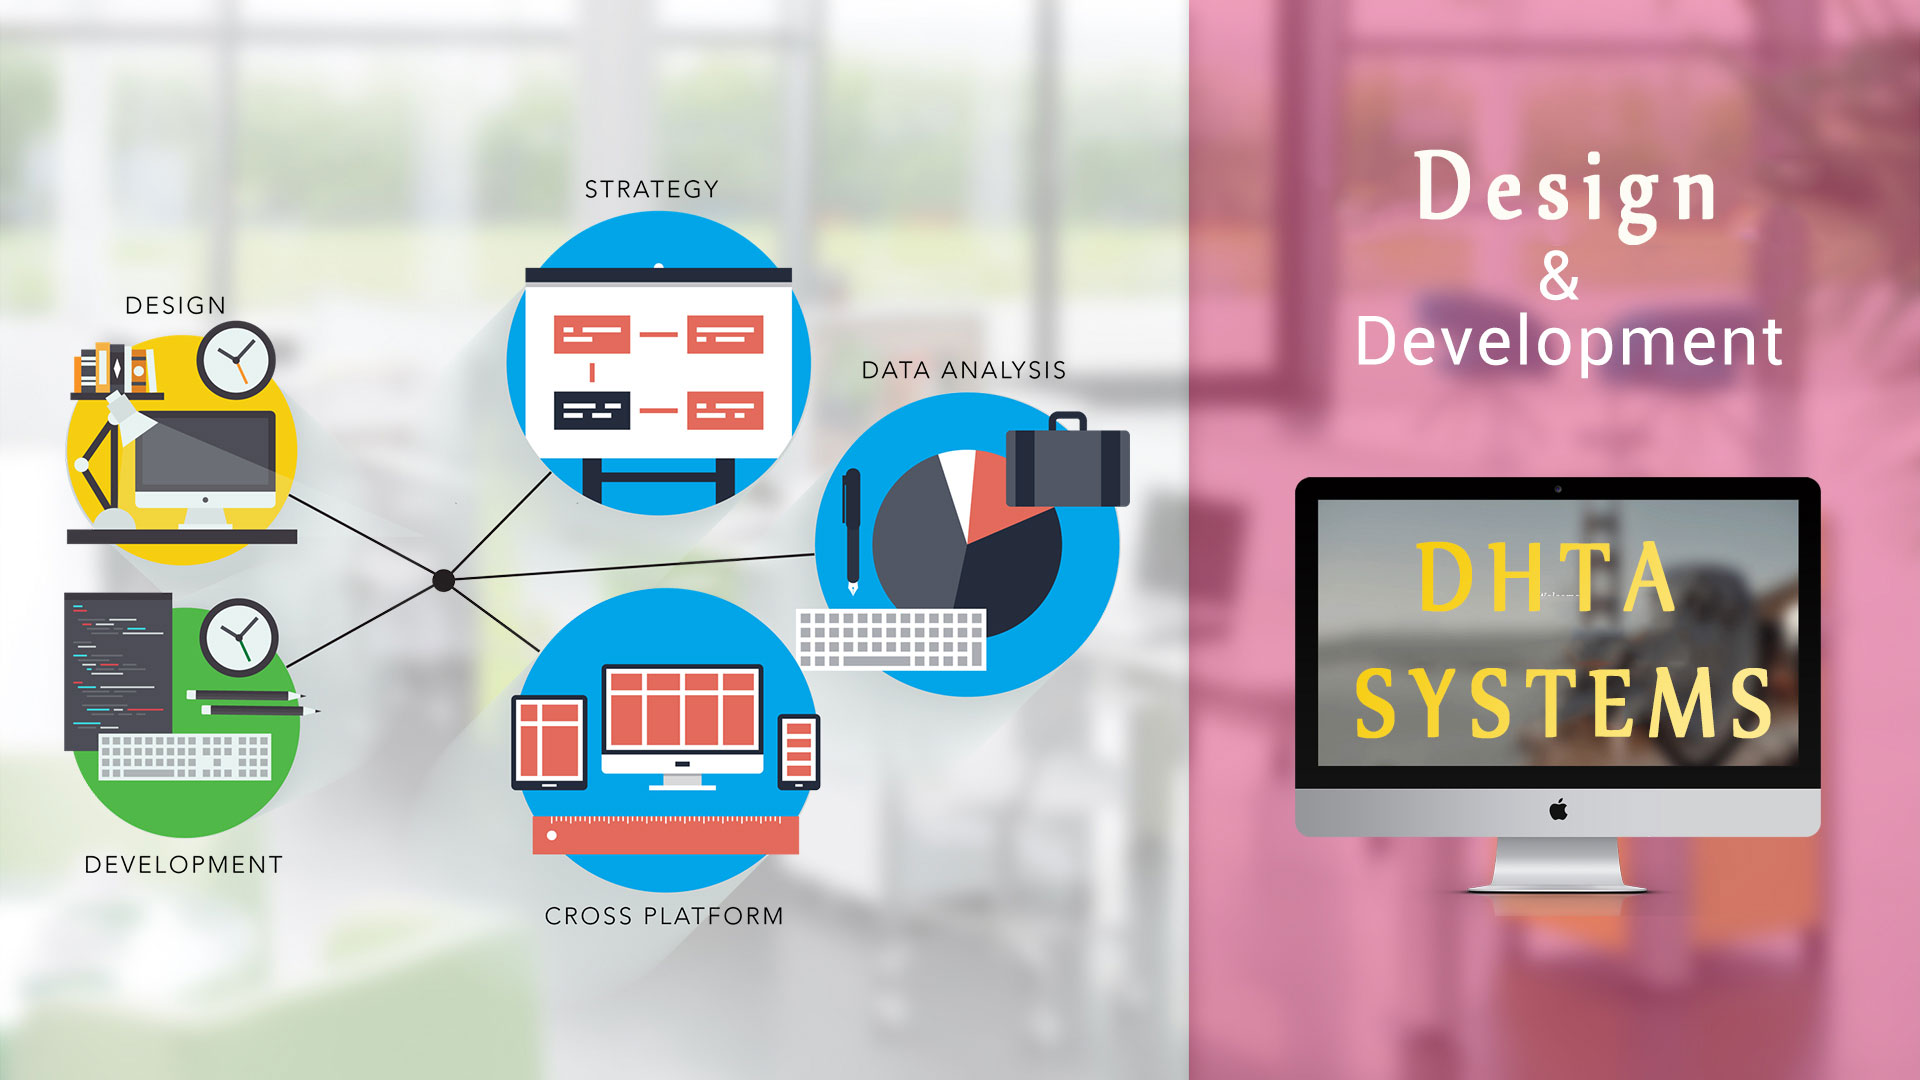 DHTA Systems